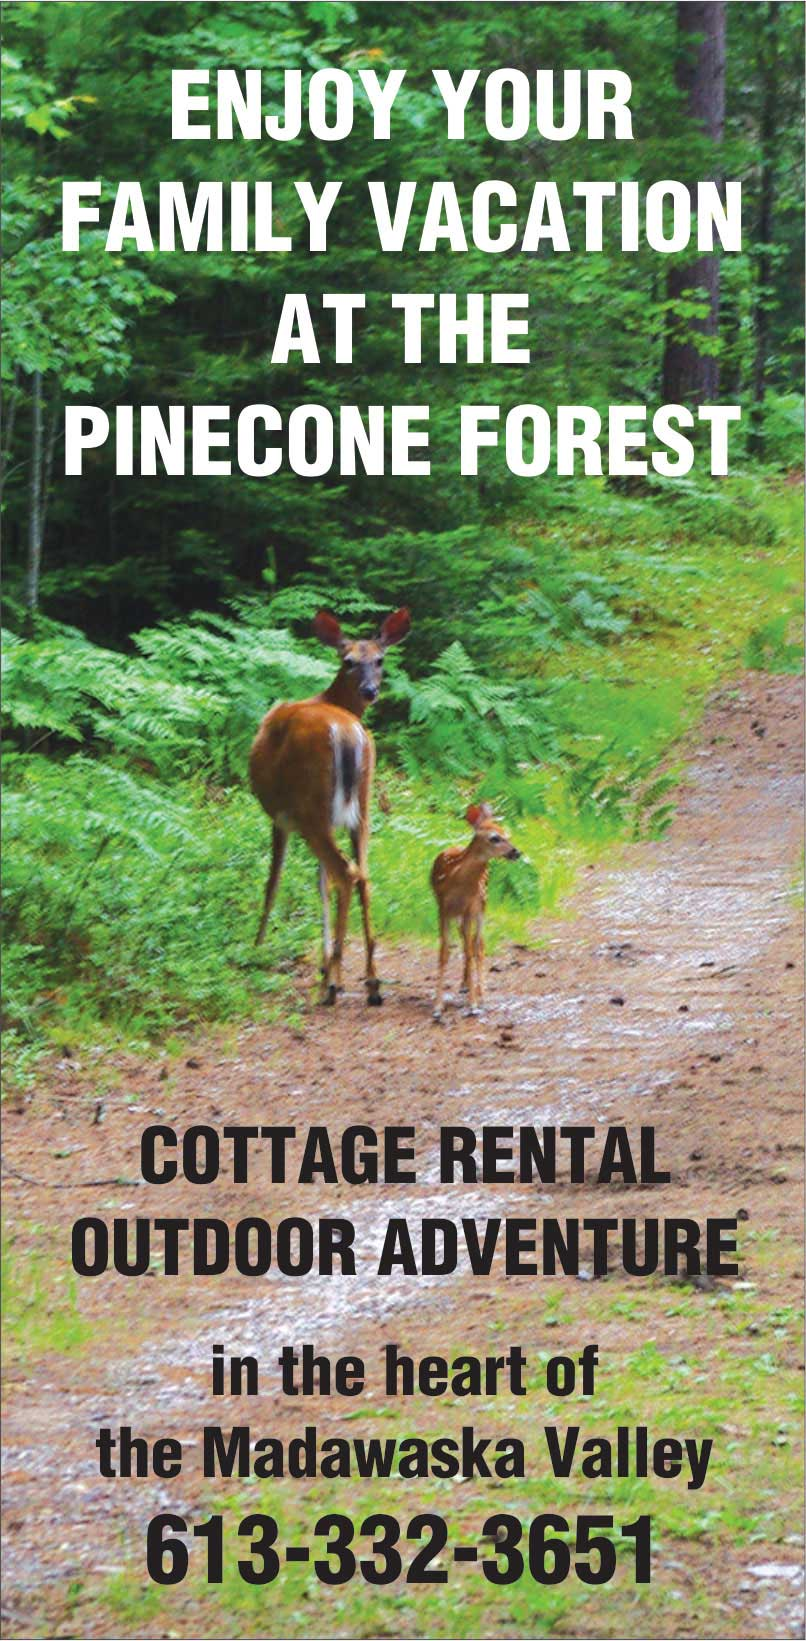 Enjoy Your Family Vacation at The Pinecone Forest--Cottage Rental and Outdoor Recreation